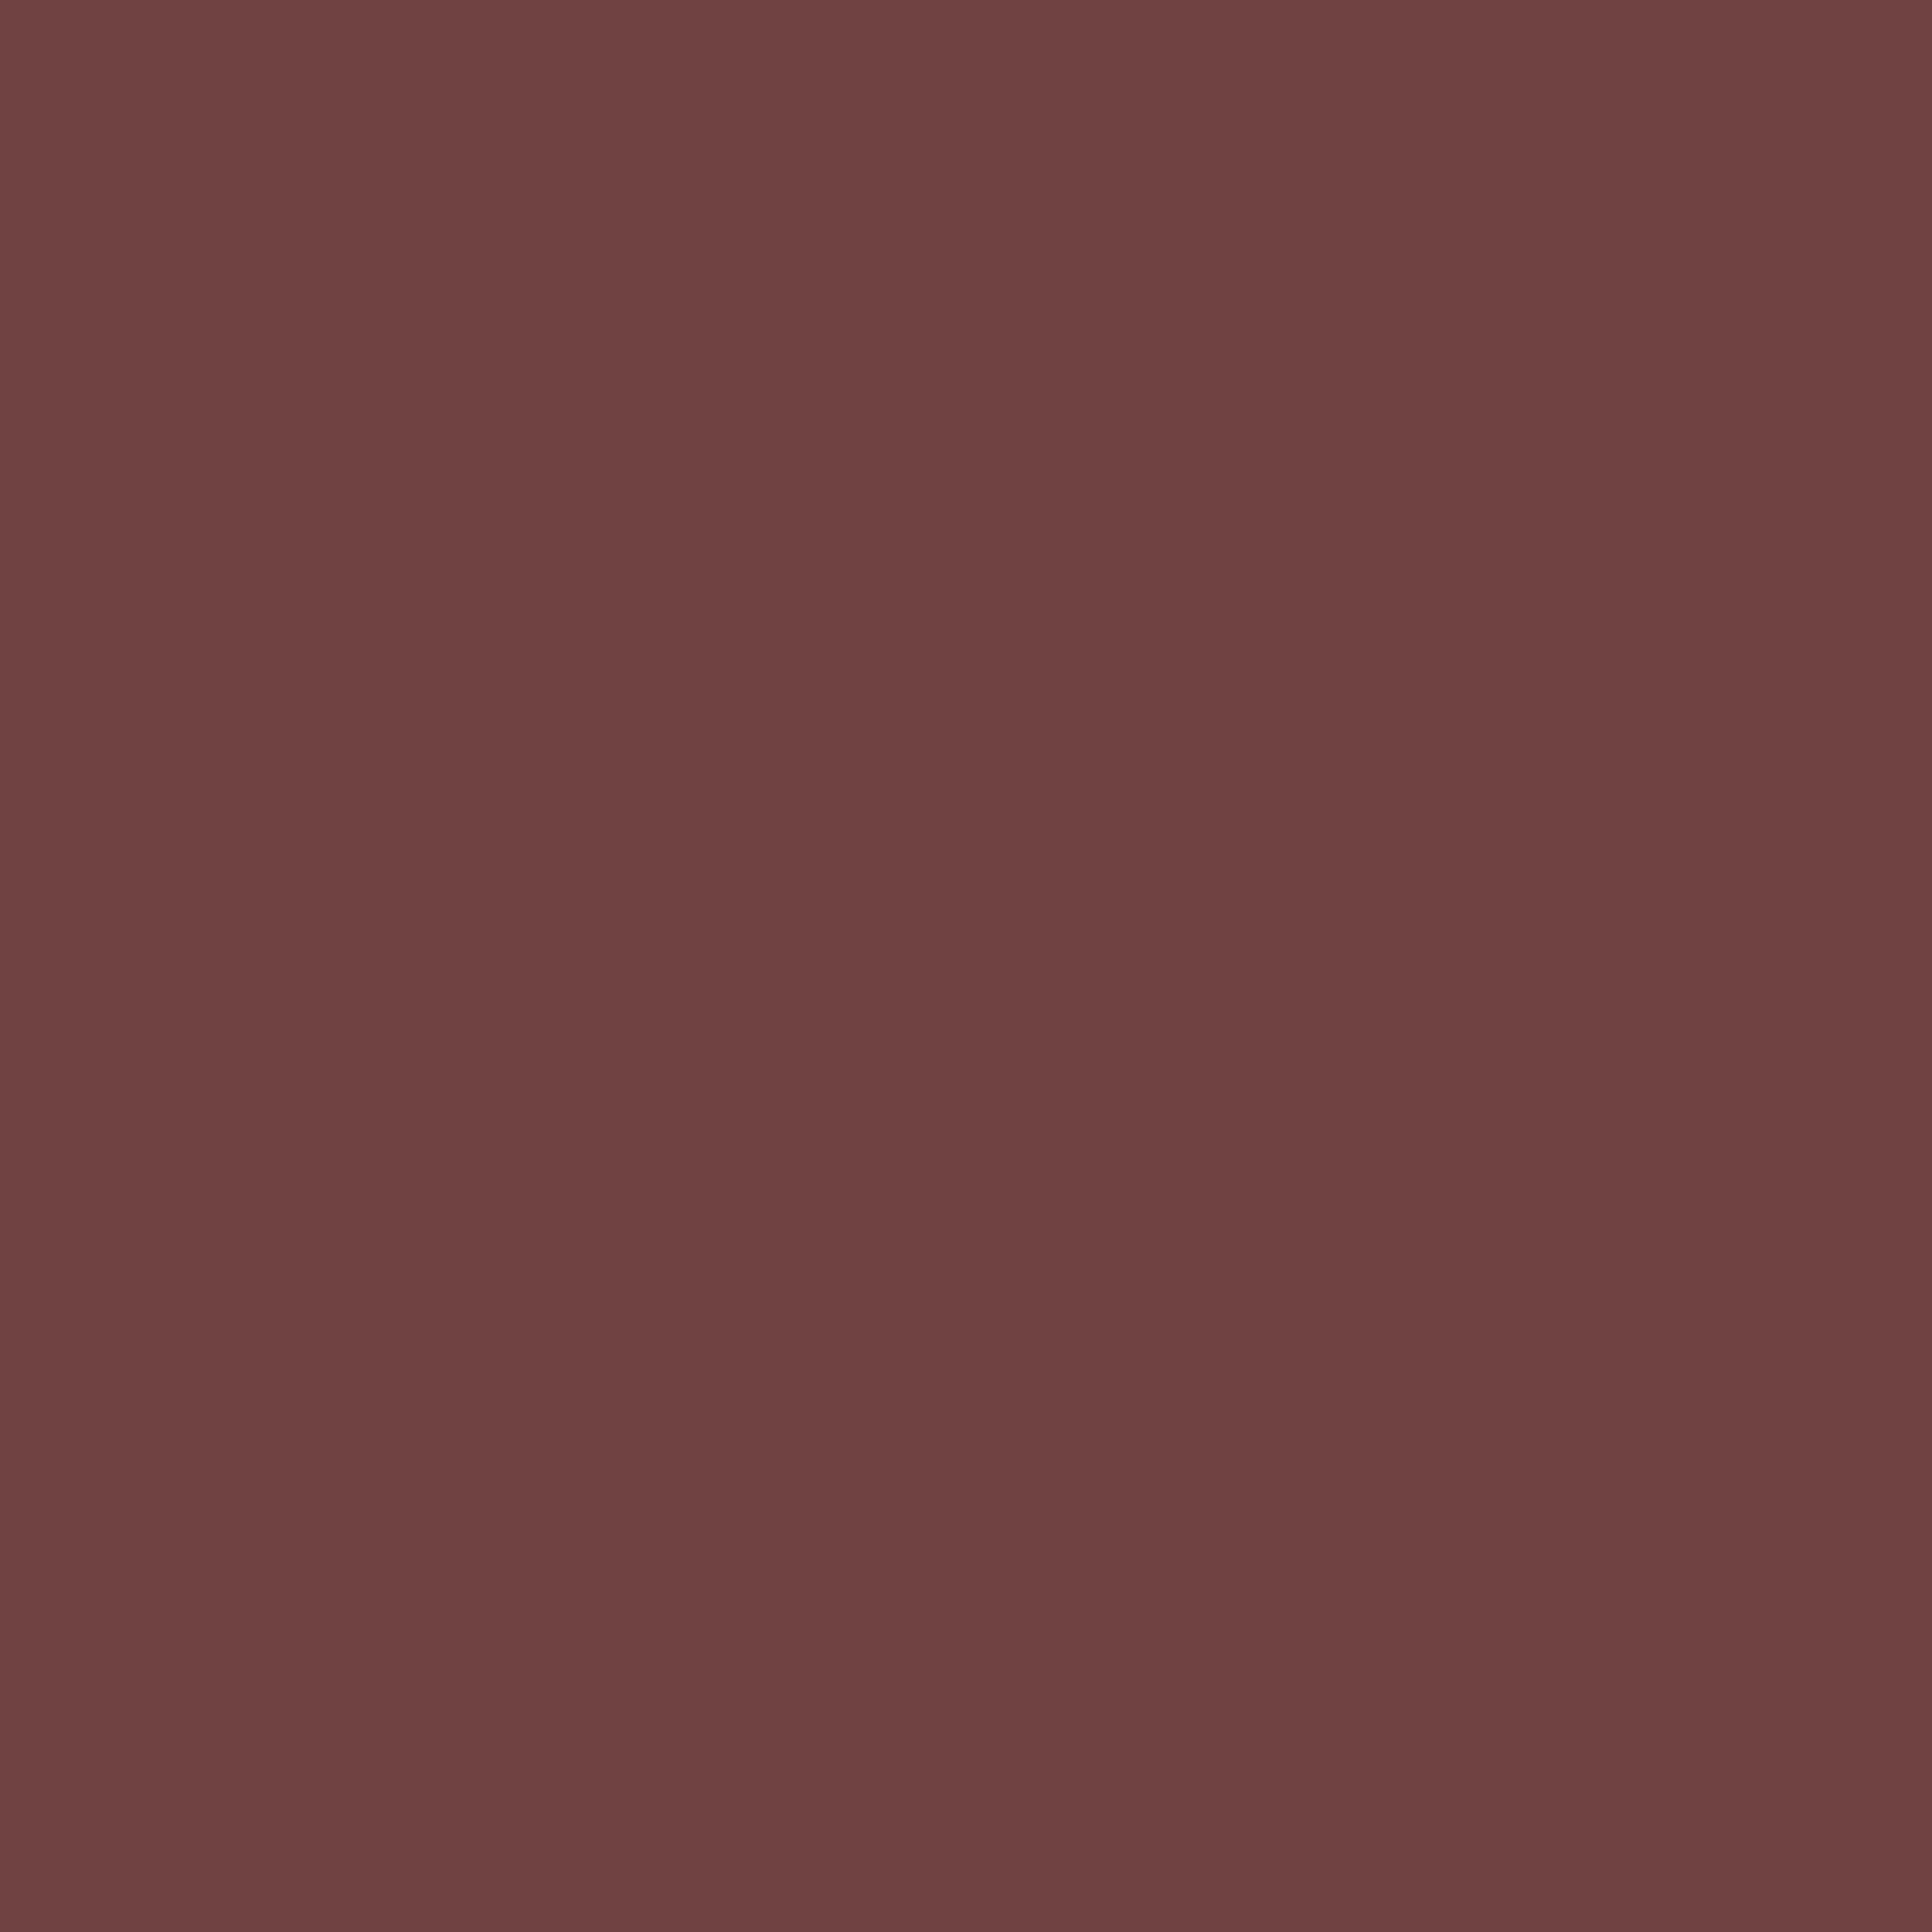 3600x3600 Deep Coffee Solid Color Background